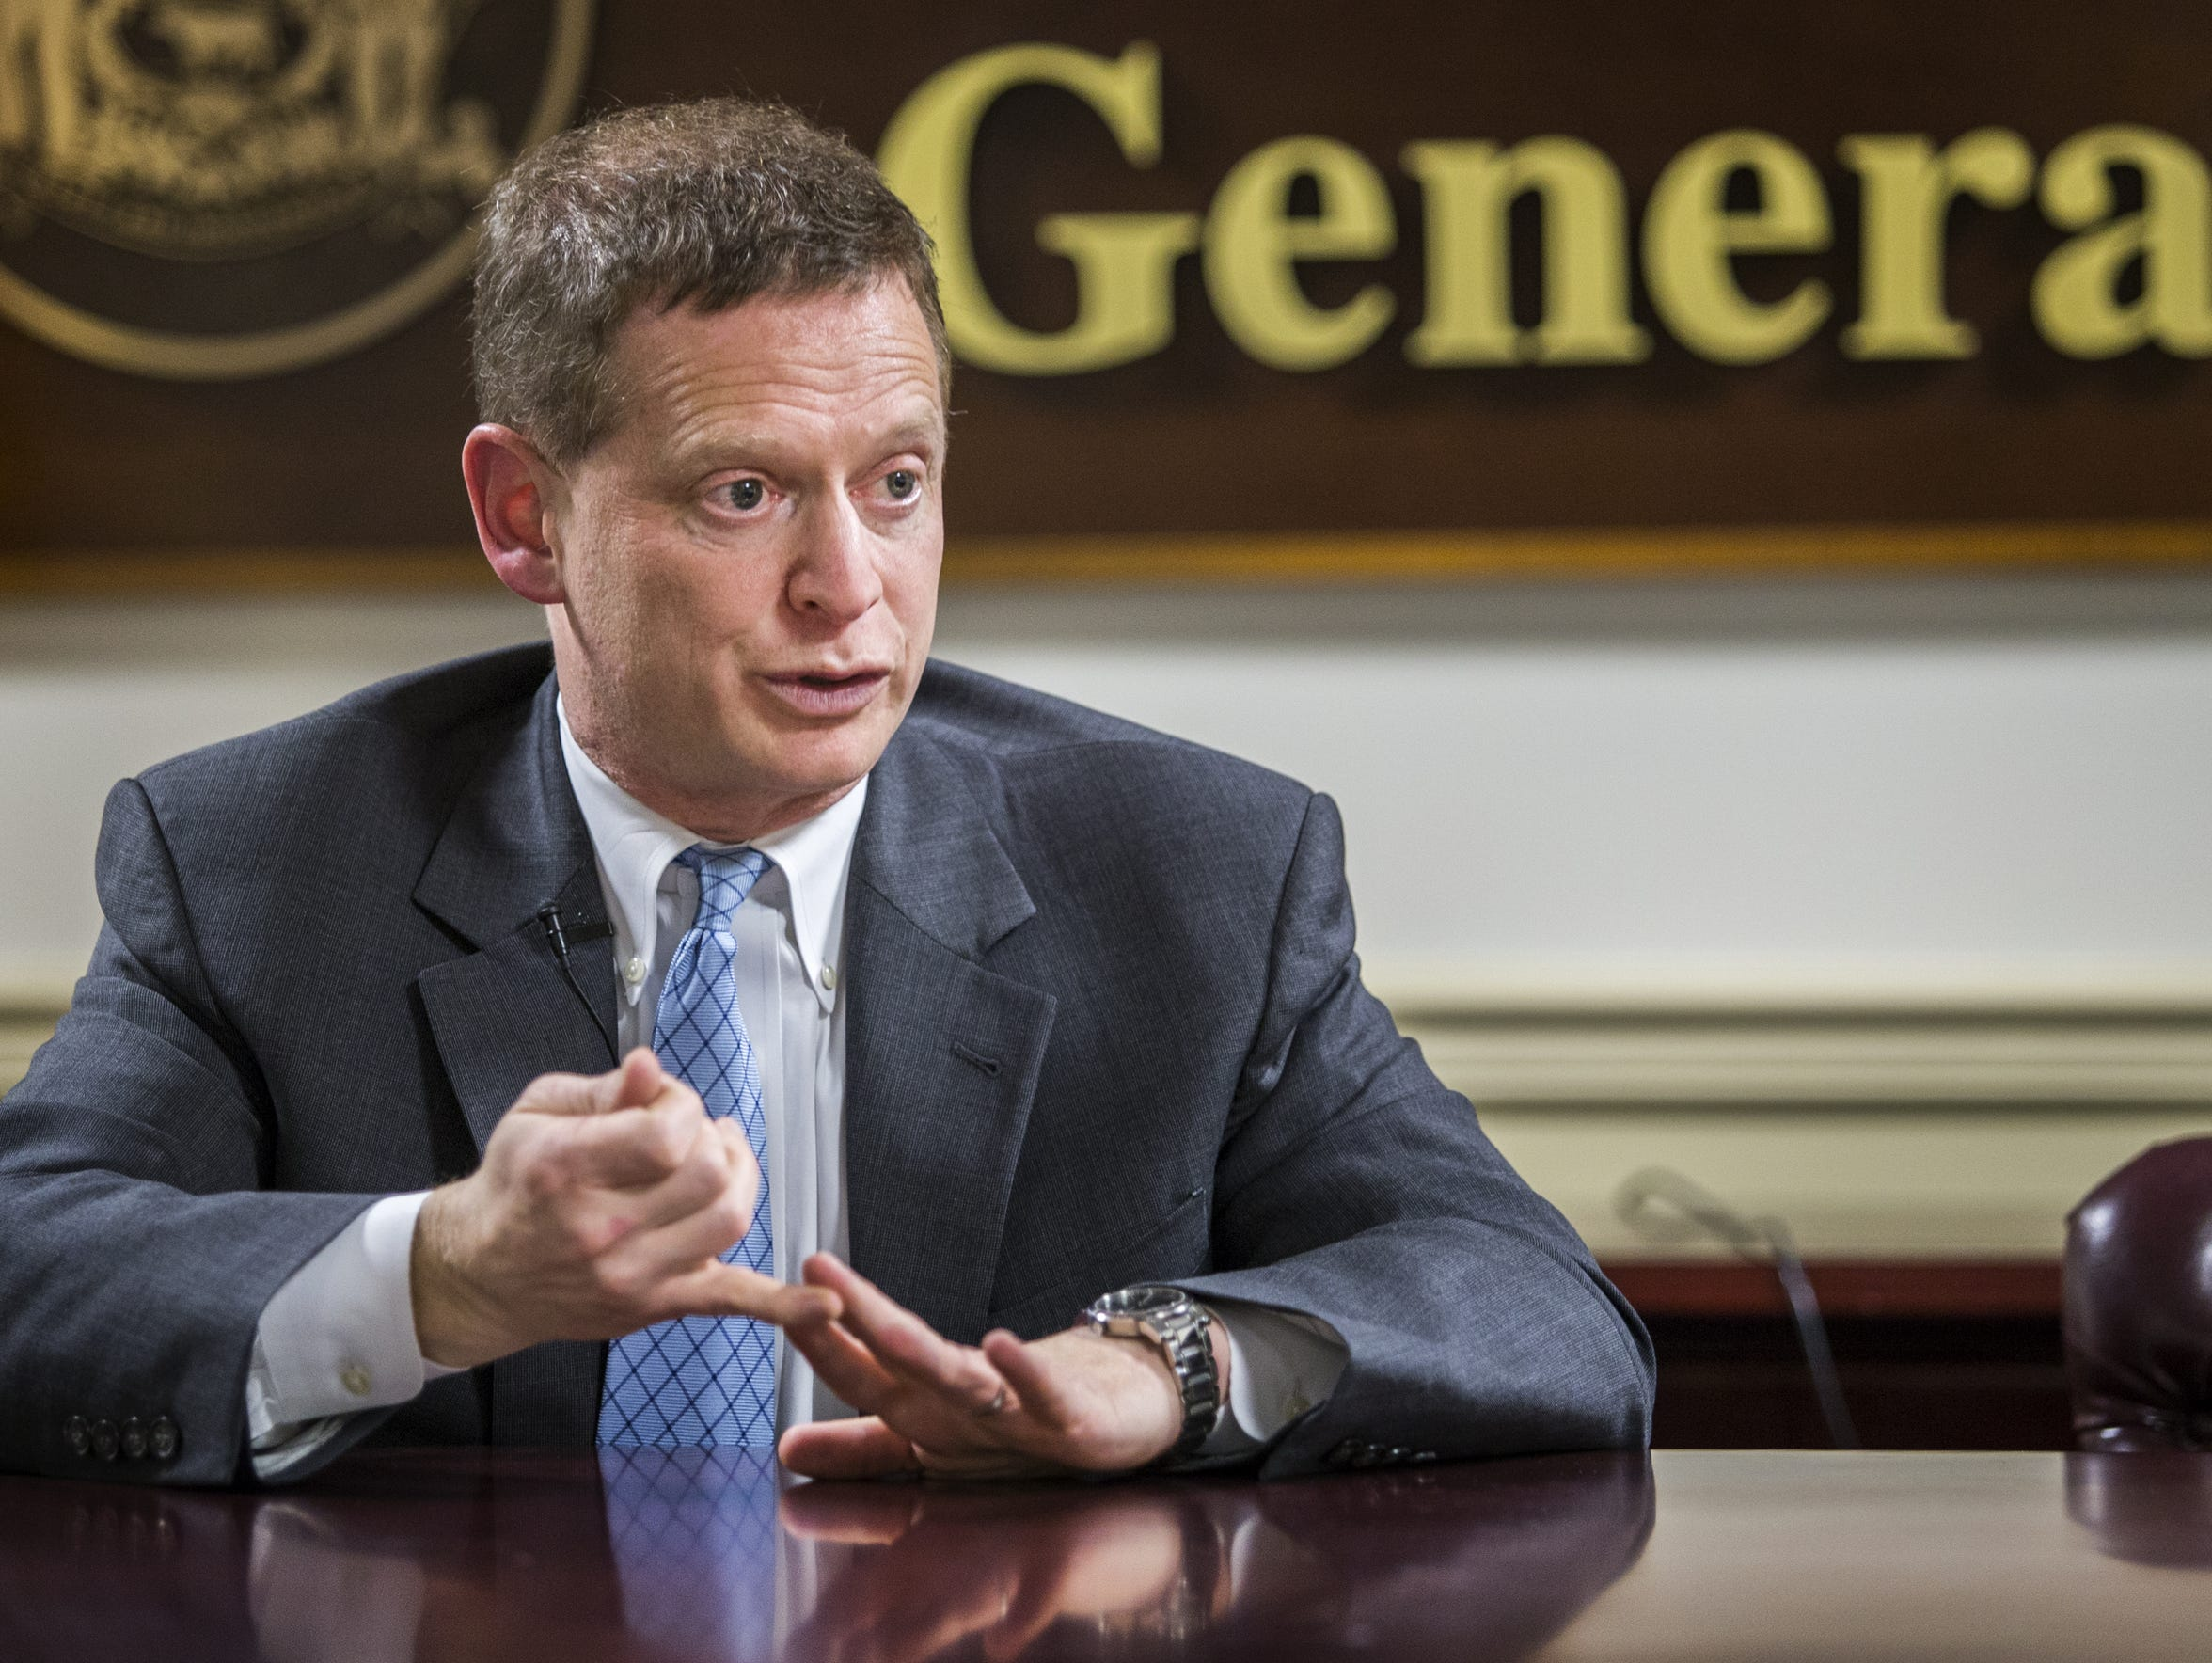 Attorney General Matt Denn discusses specifics regarding